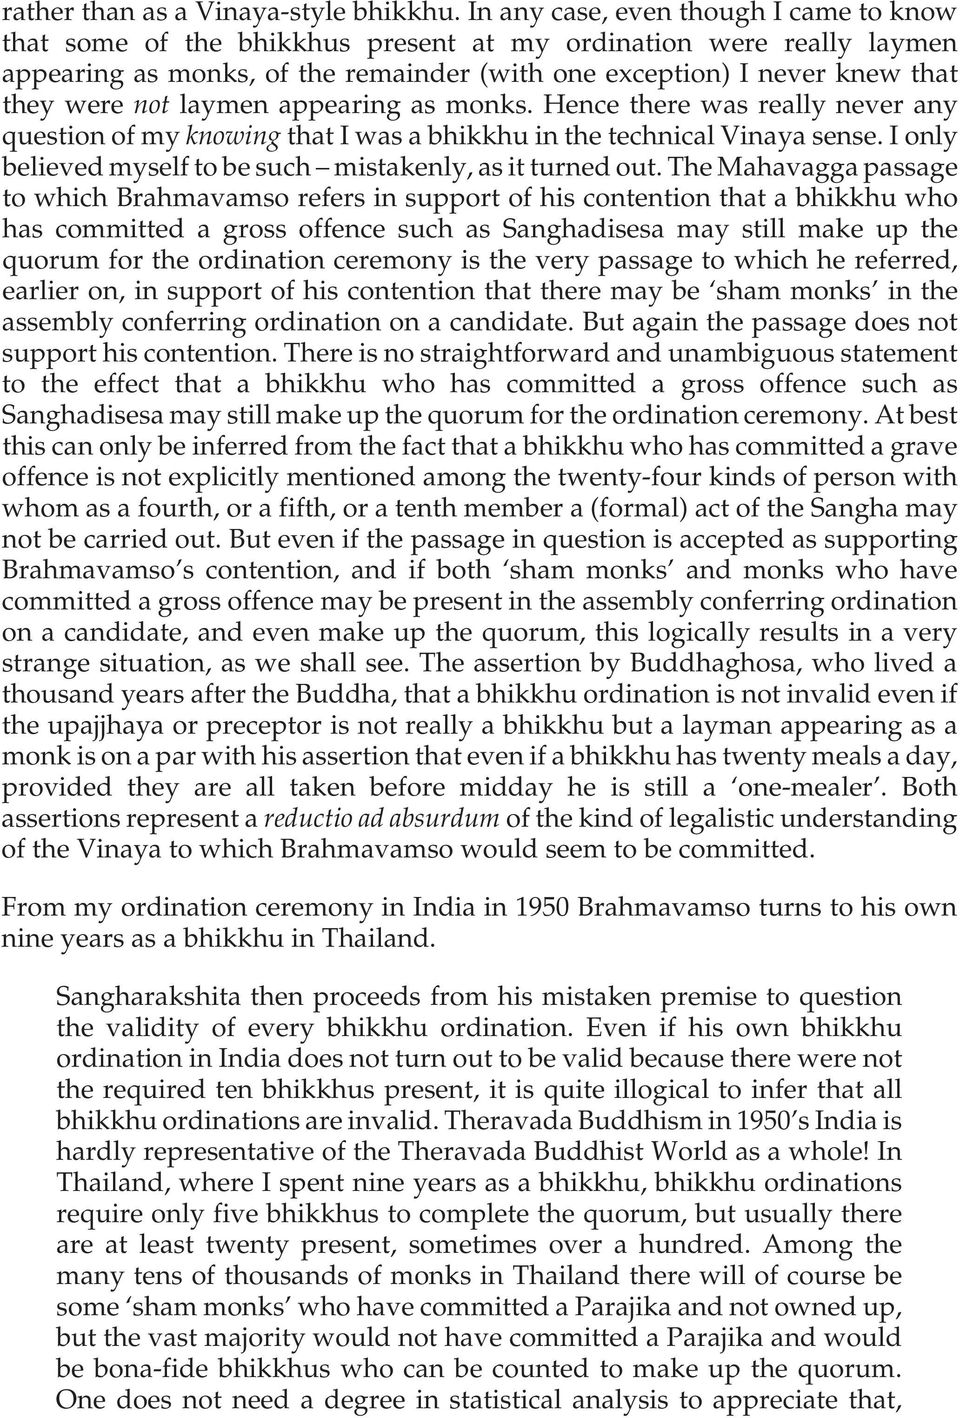 laymen appearing as monks. Hence there was really never any question of my knowing that I was a bhikkhu in the technical Vinaya sense. I only believed myself to be such mistakenly, as it turned out.